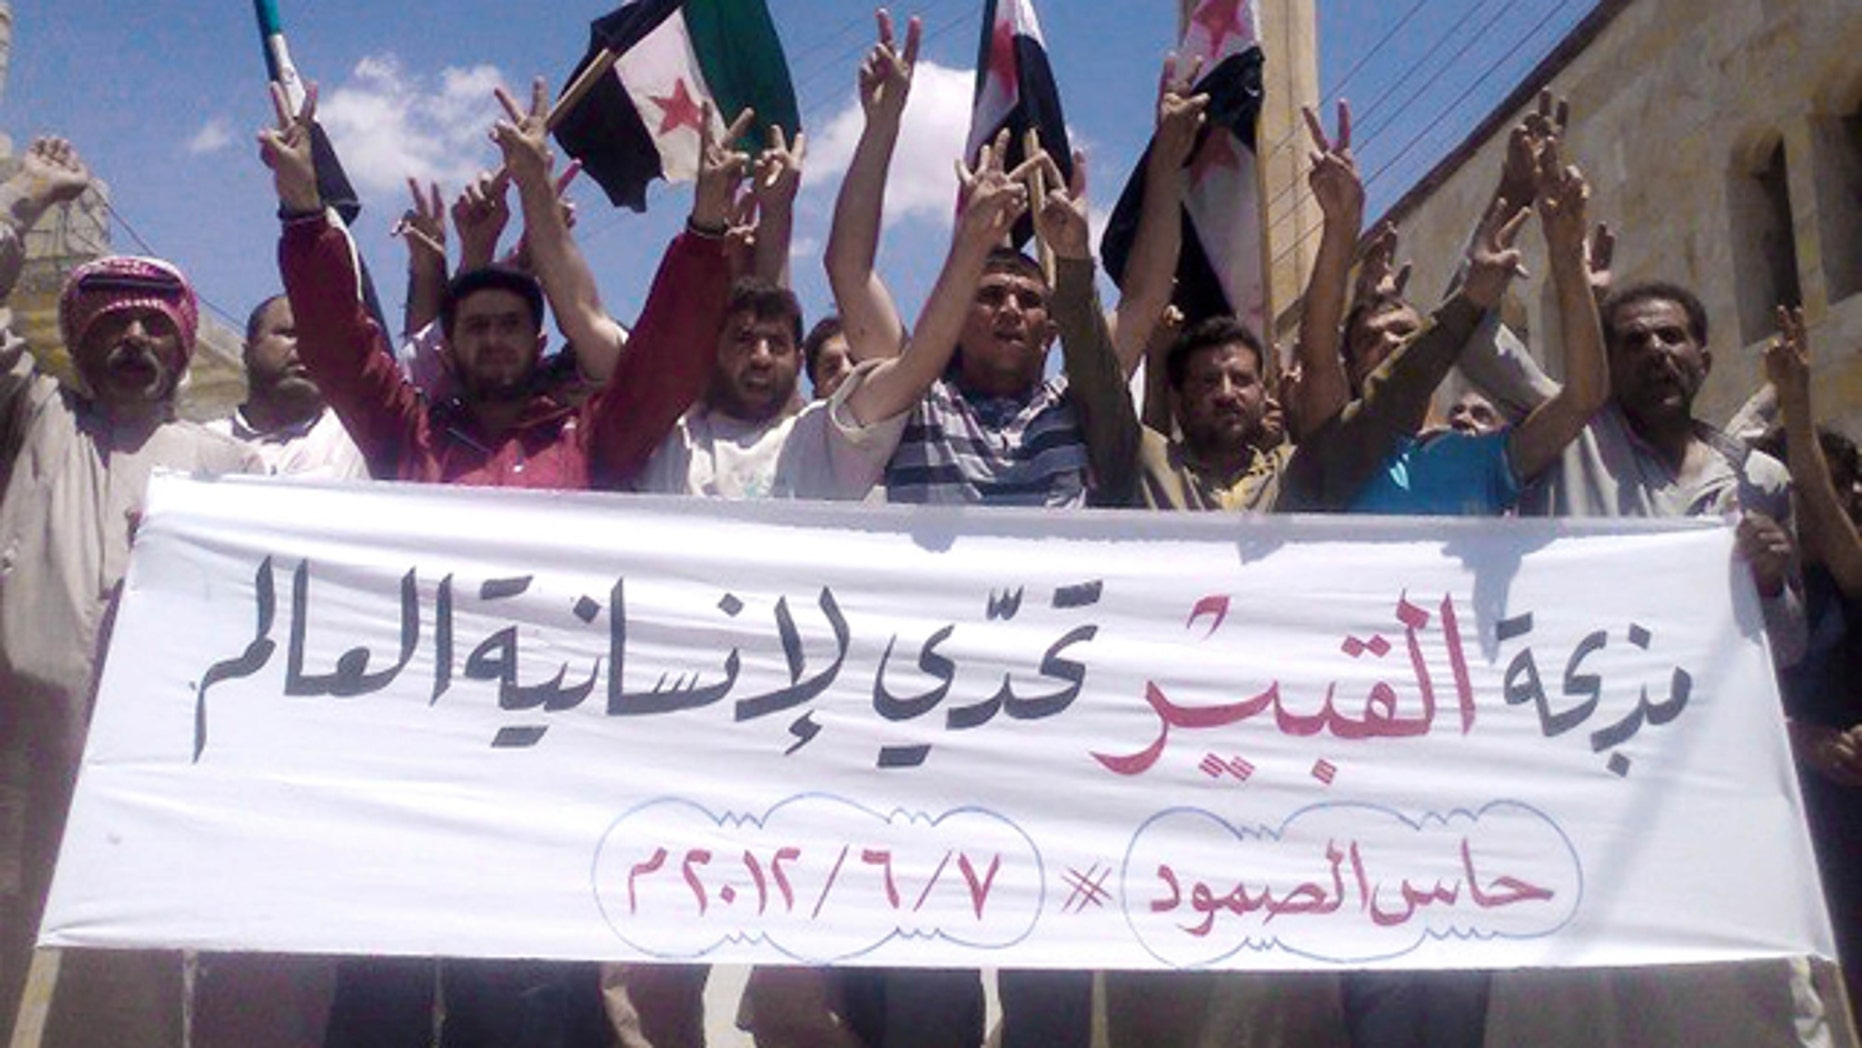 """June 7, 2012: In this citizen journalism image provided by Edlib News Network ENN, anti-Syrian regime protesters chant slogans and hold a banner in Arabic that reads, """"Al-Qubair massacre challenges the world's humanity,""""during a protest against the massacre of Mazraat al-Qubair, in the northern village of Hass, in Idlib province, Syria."""